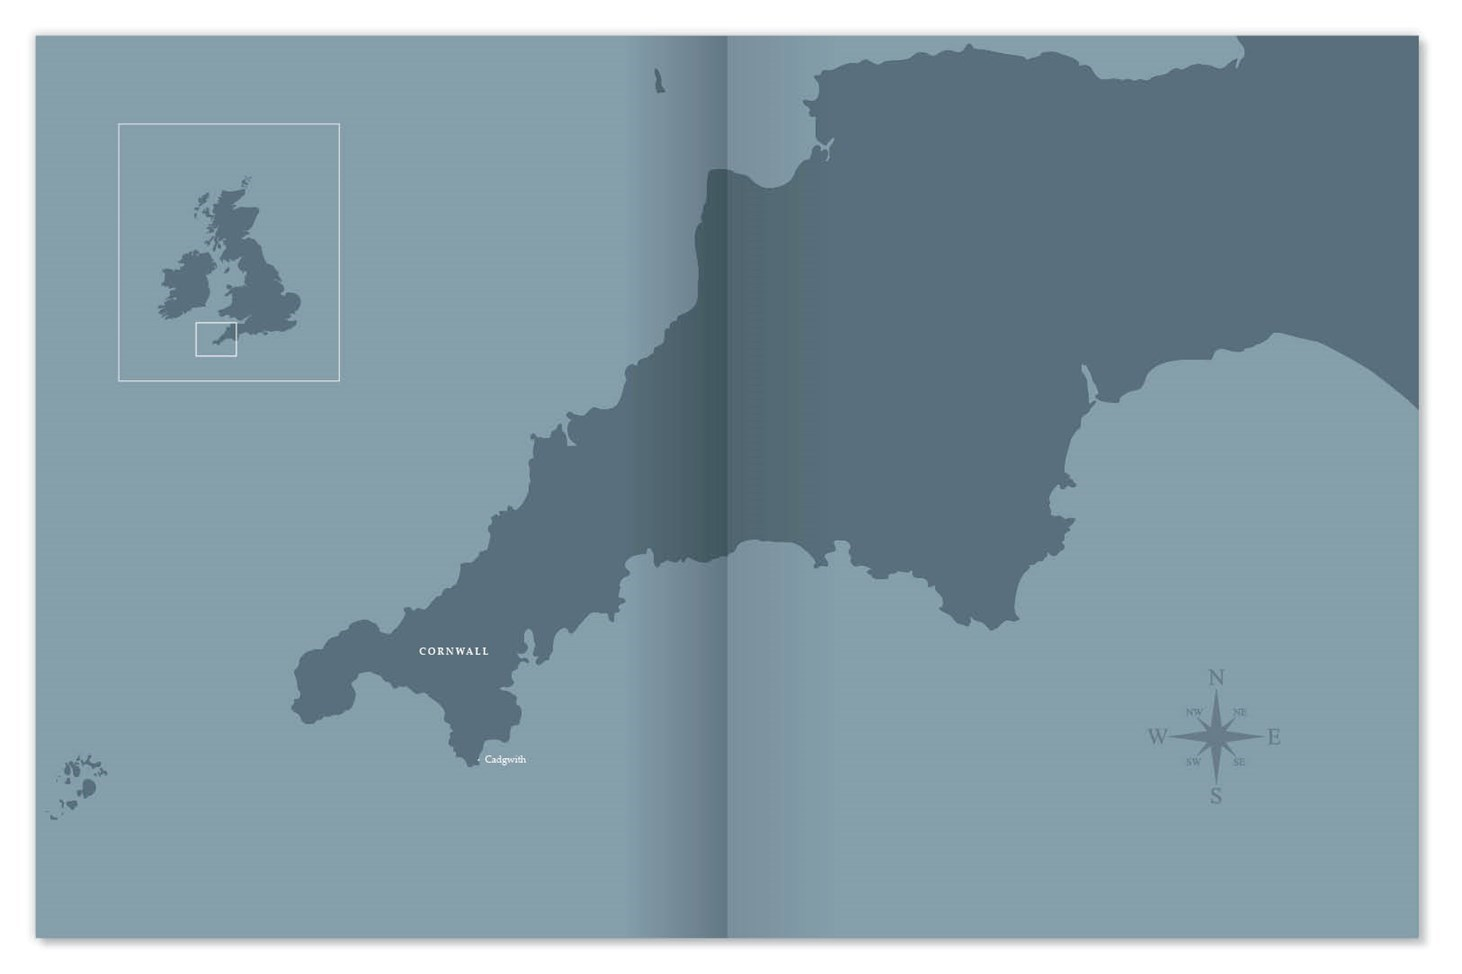 Elementum, design, print, publication, magazine, nature, clean, presentation, layout, Design79, Cornwall, map, Cadgwith